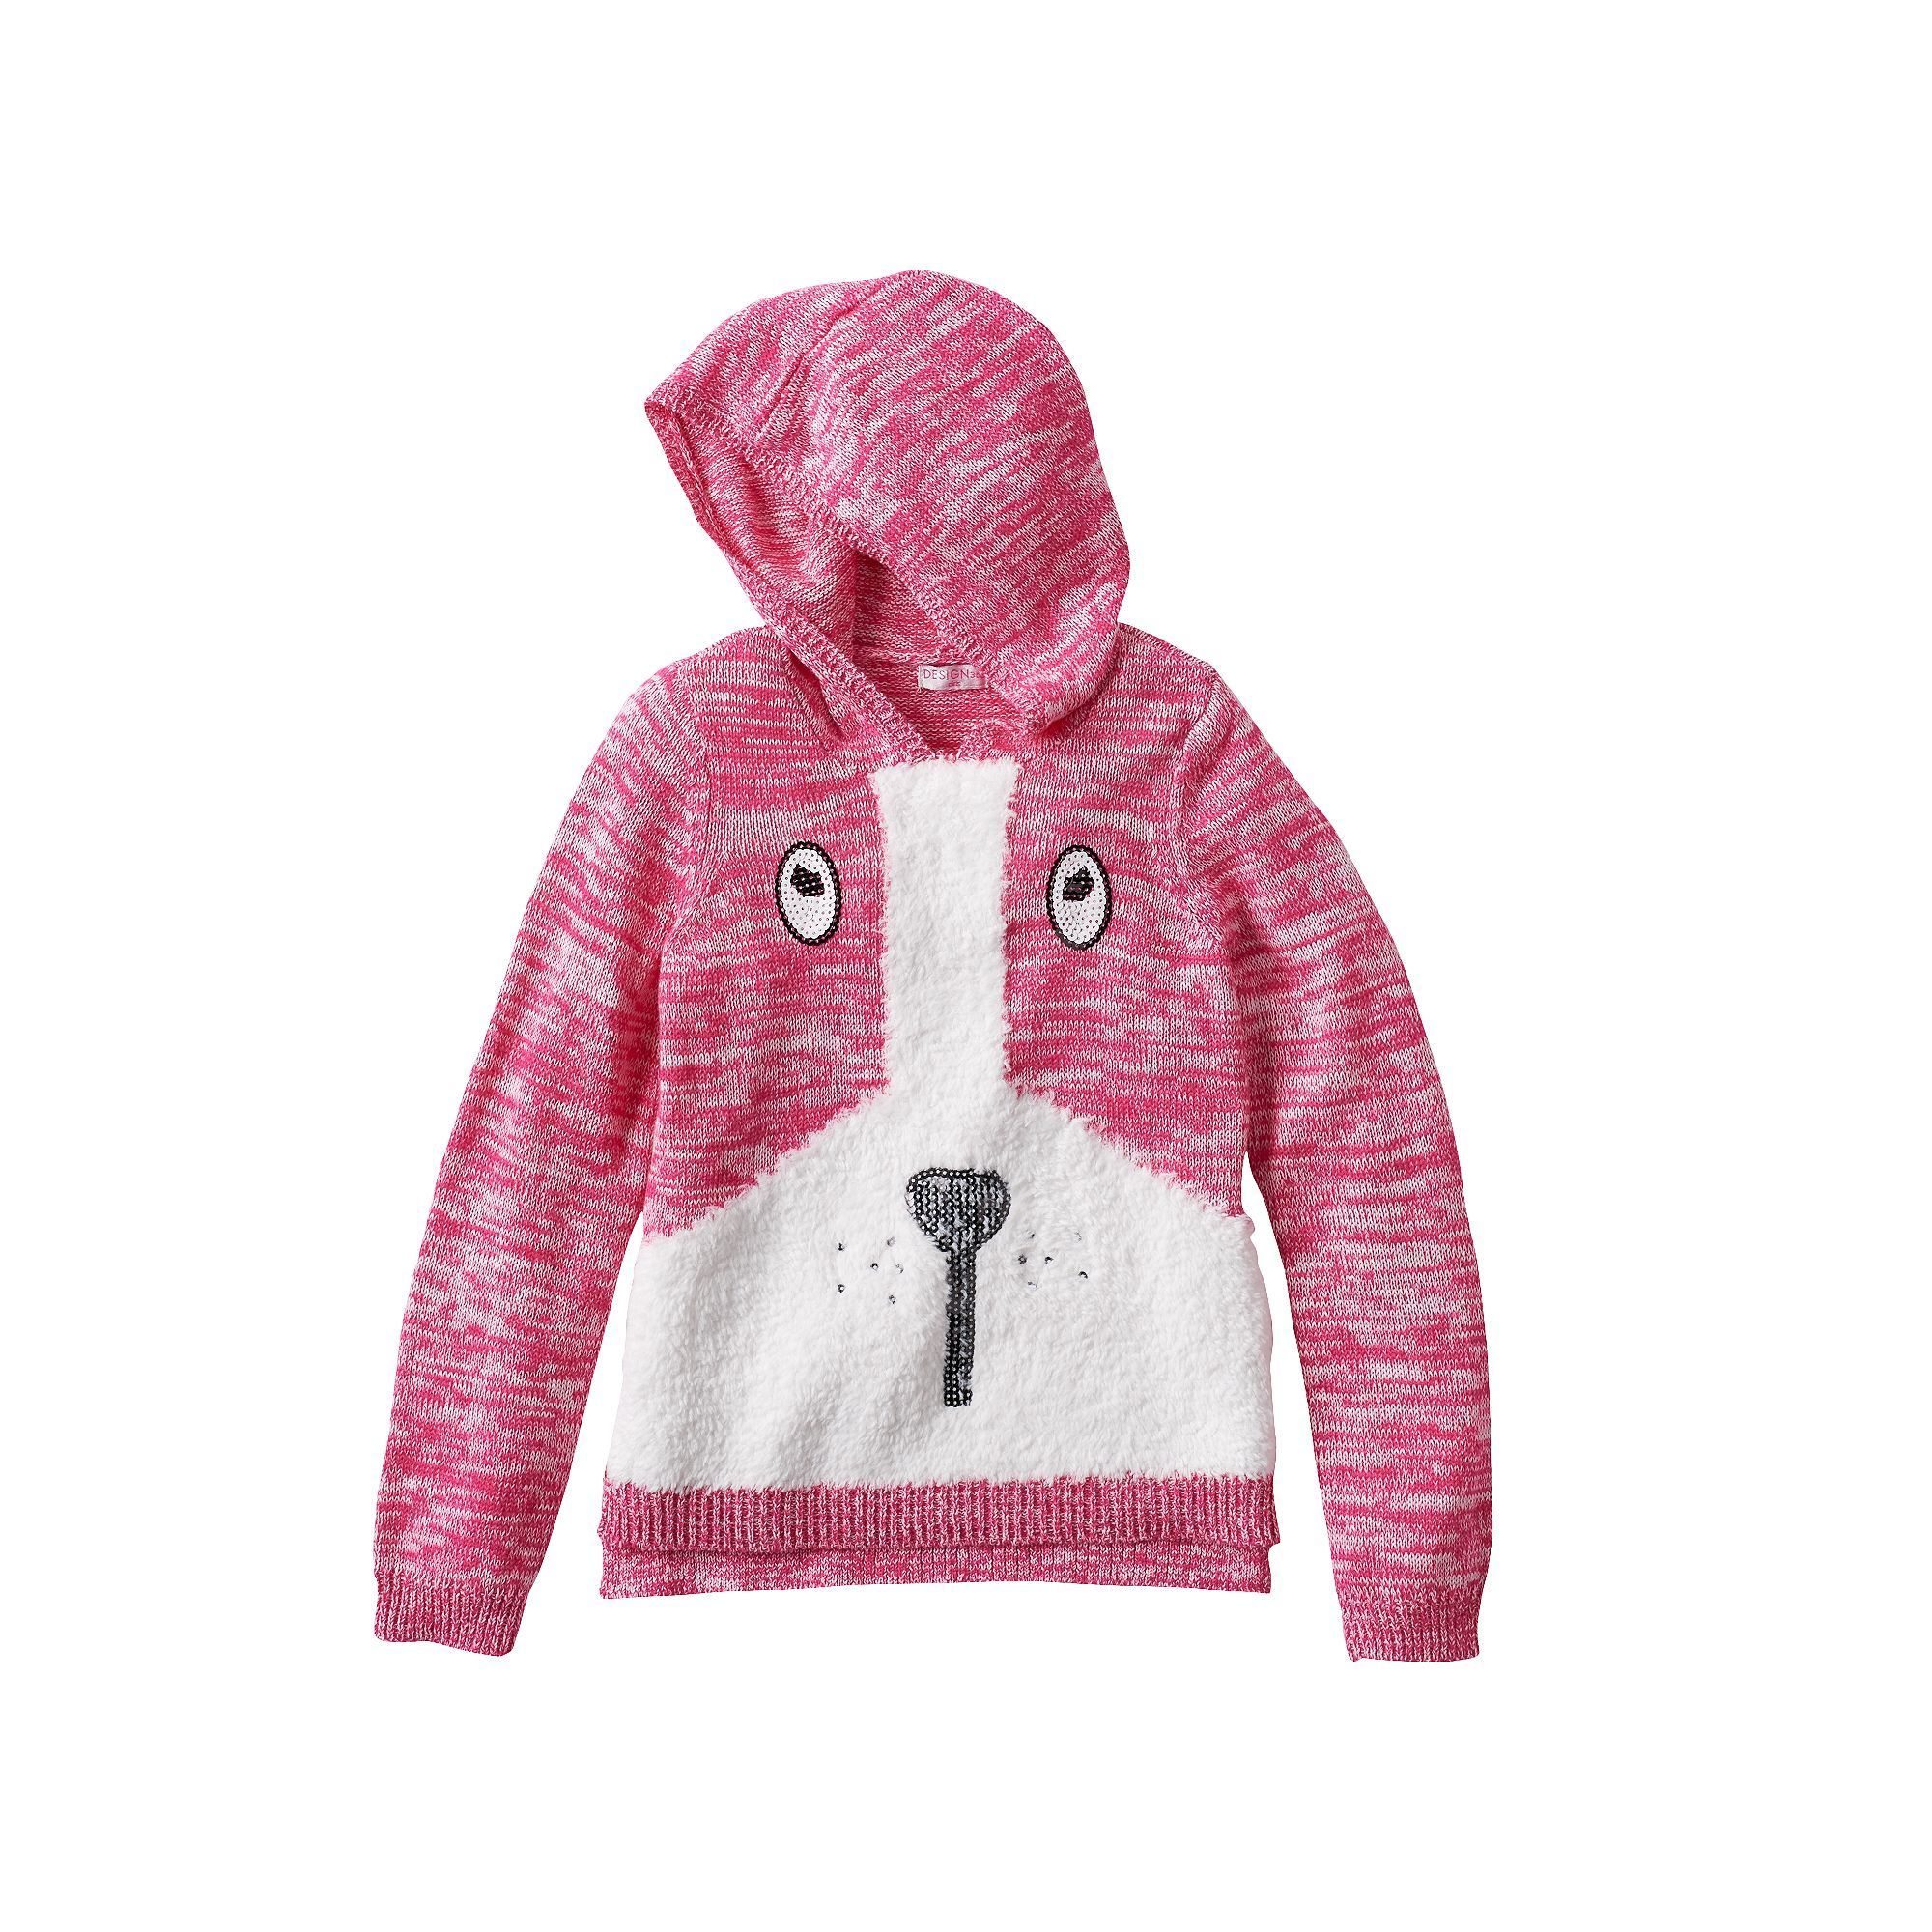 Design 365 Puppy Marled Sweater Hoodie - Girls 4-6x, Size: 6, Pink ...